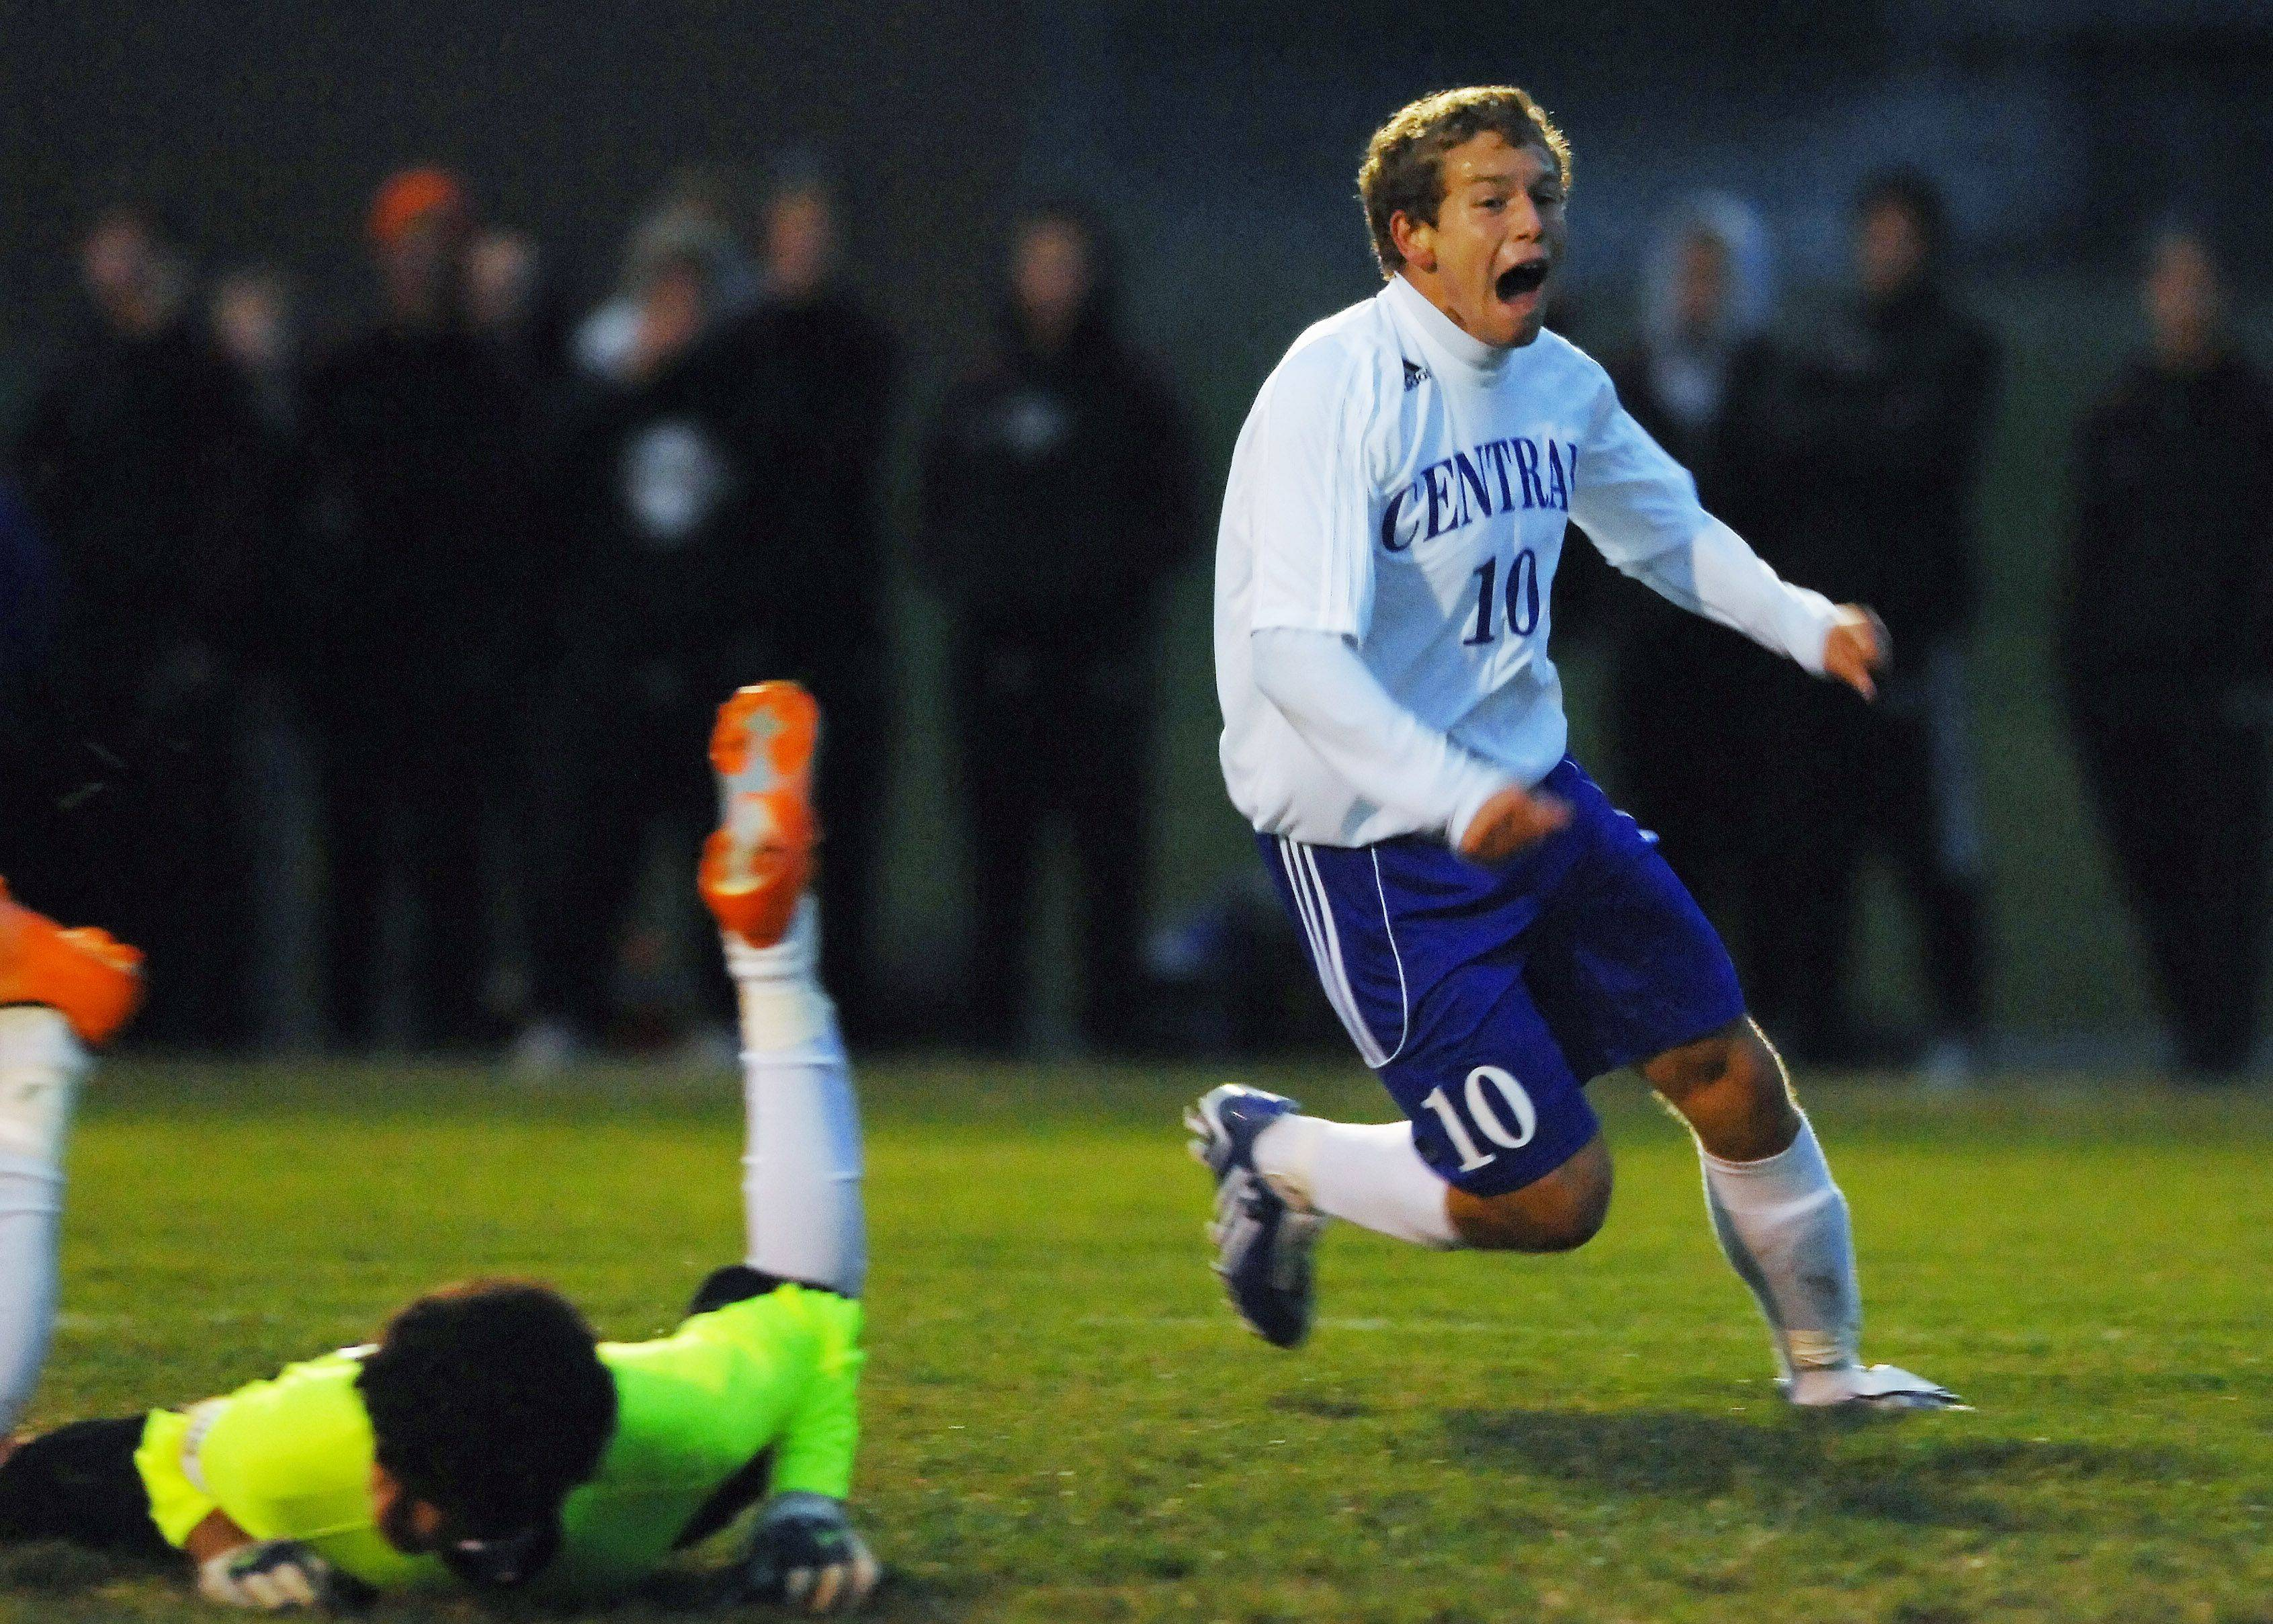 Burlington Central's Chris Gousios yells as his shot hits the back of the net and Marengo goalkeeper Sergio Orozco lays on the ground in the Hampshire regional game Tuesday. It was Gousios' first of three goals.